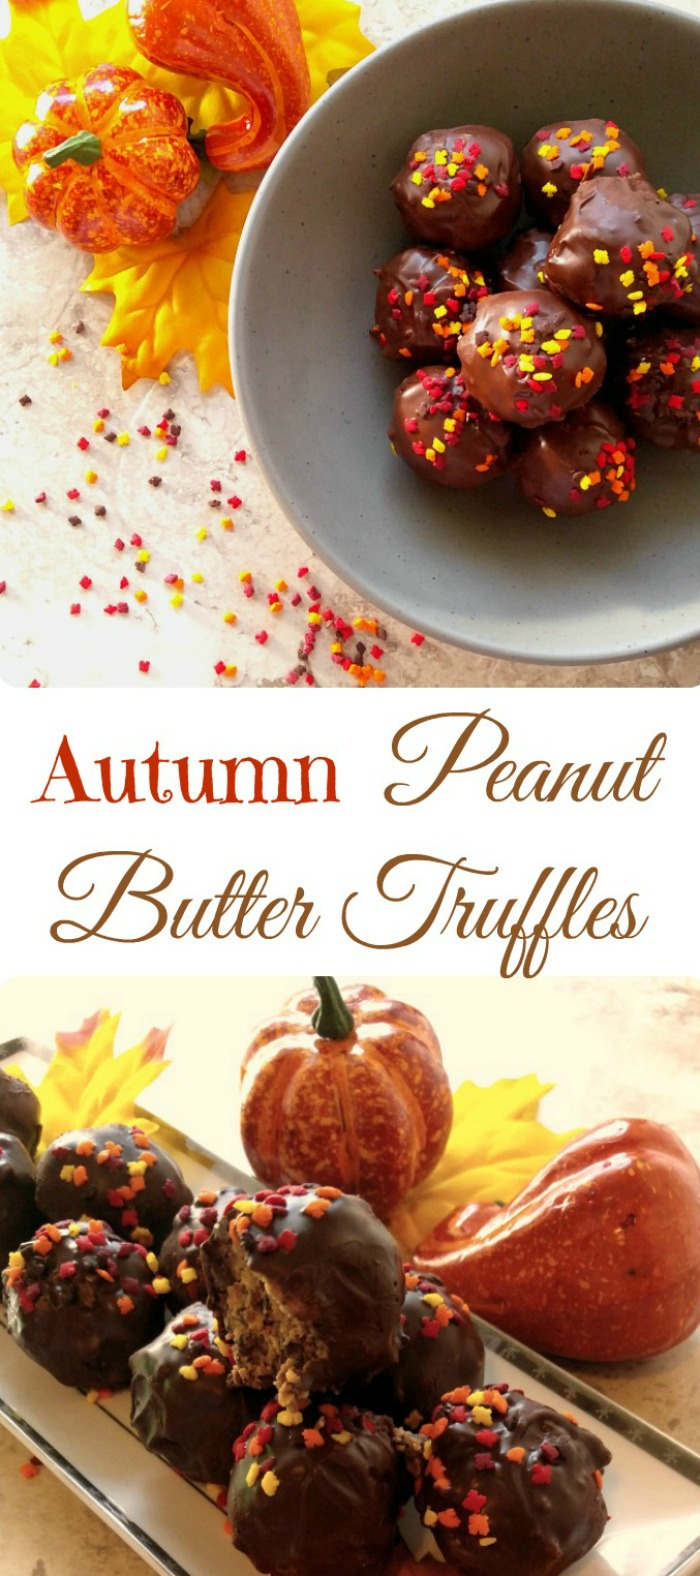 Autumn peanut butter truffles make a great treat for your Halloween or Thanksgiving table